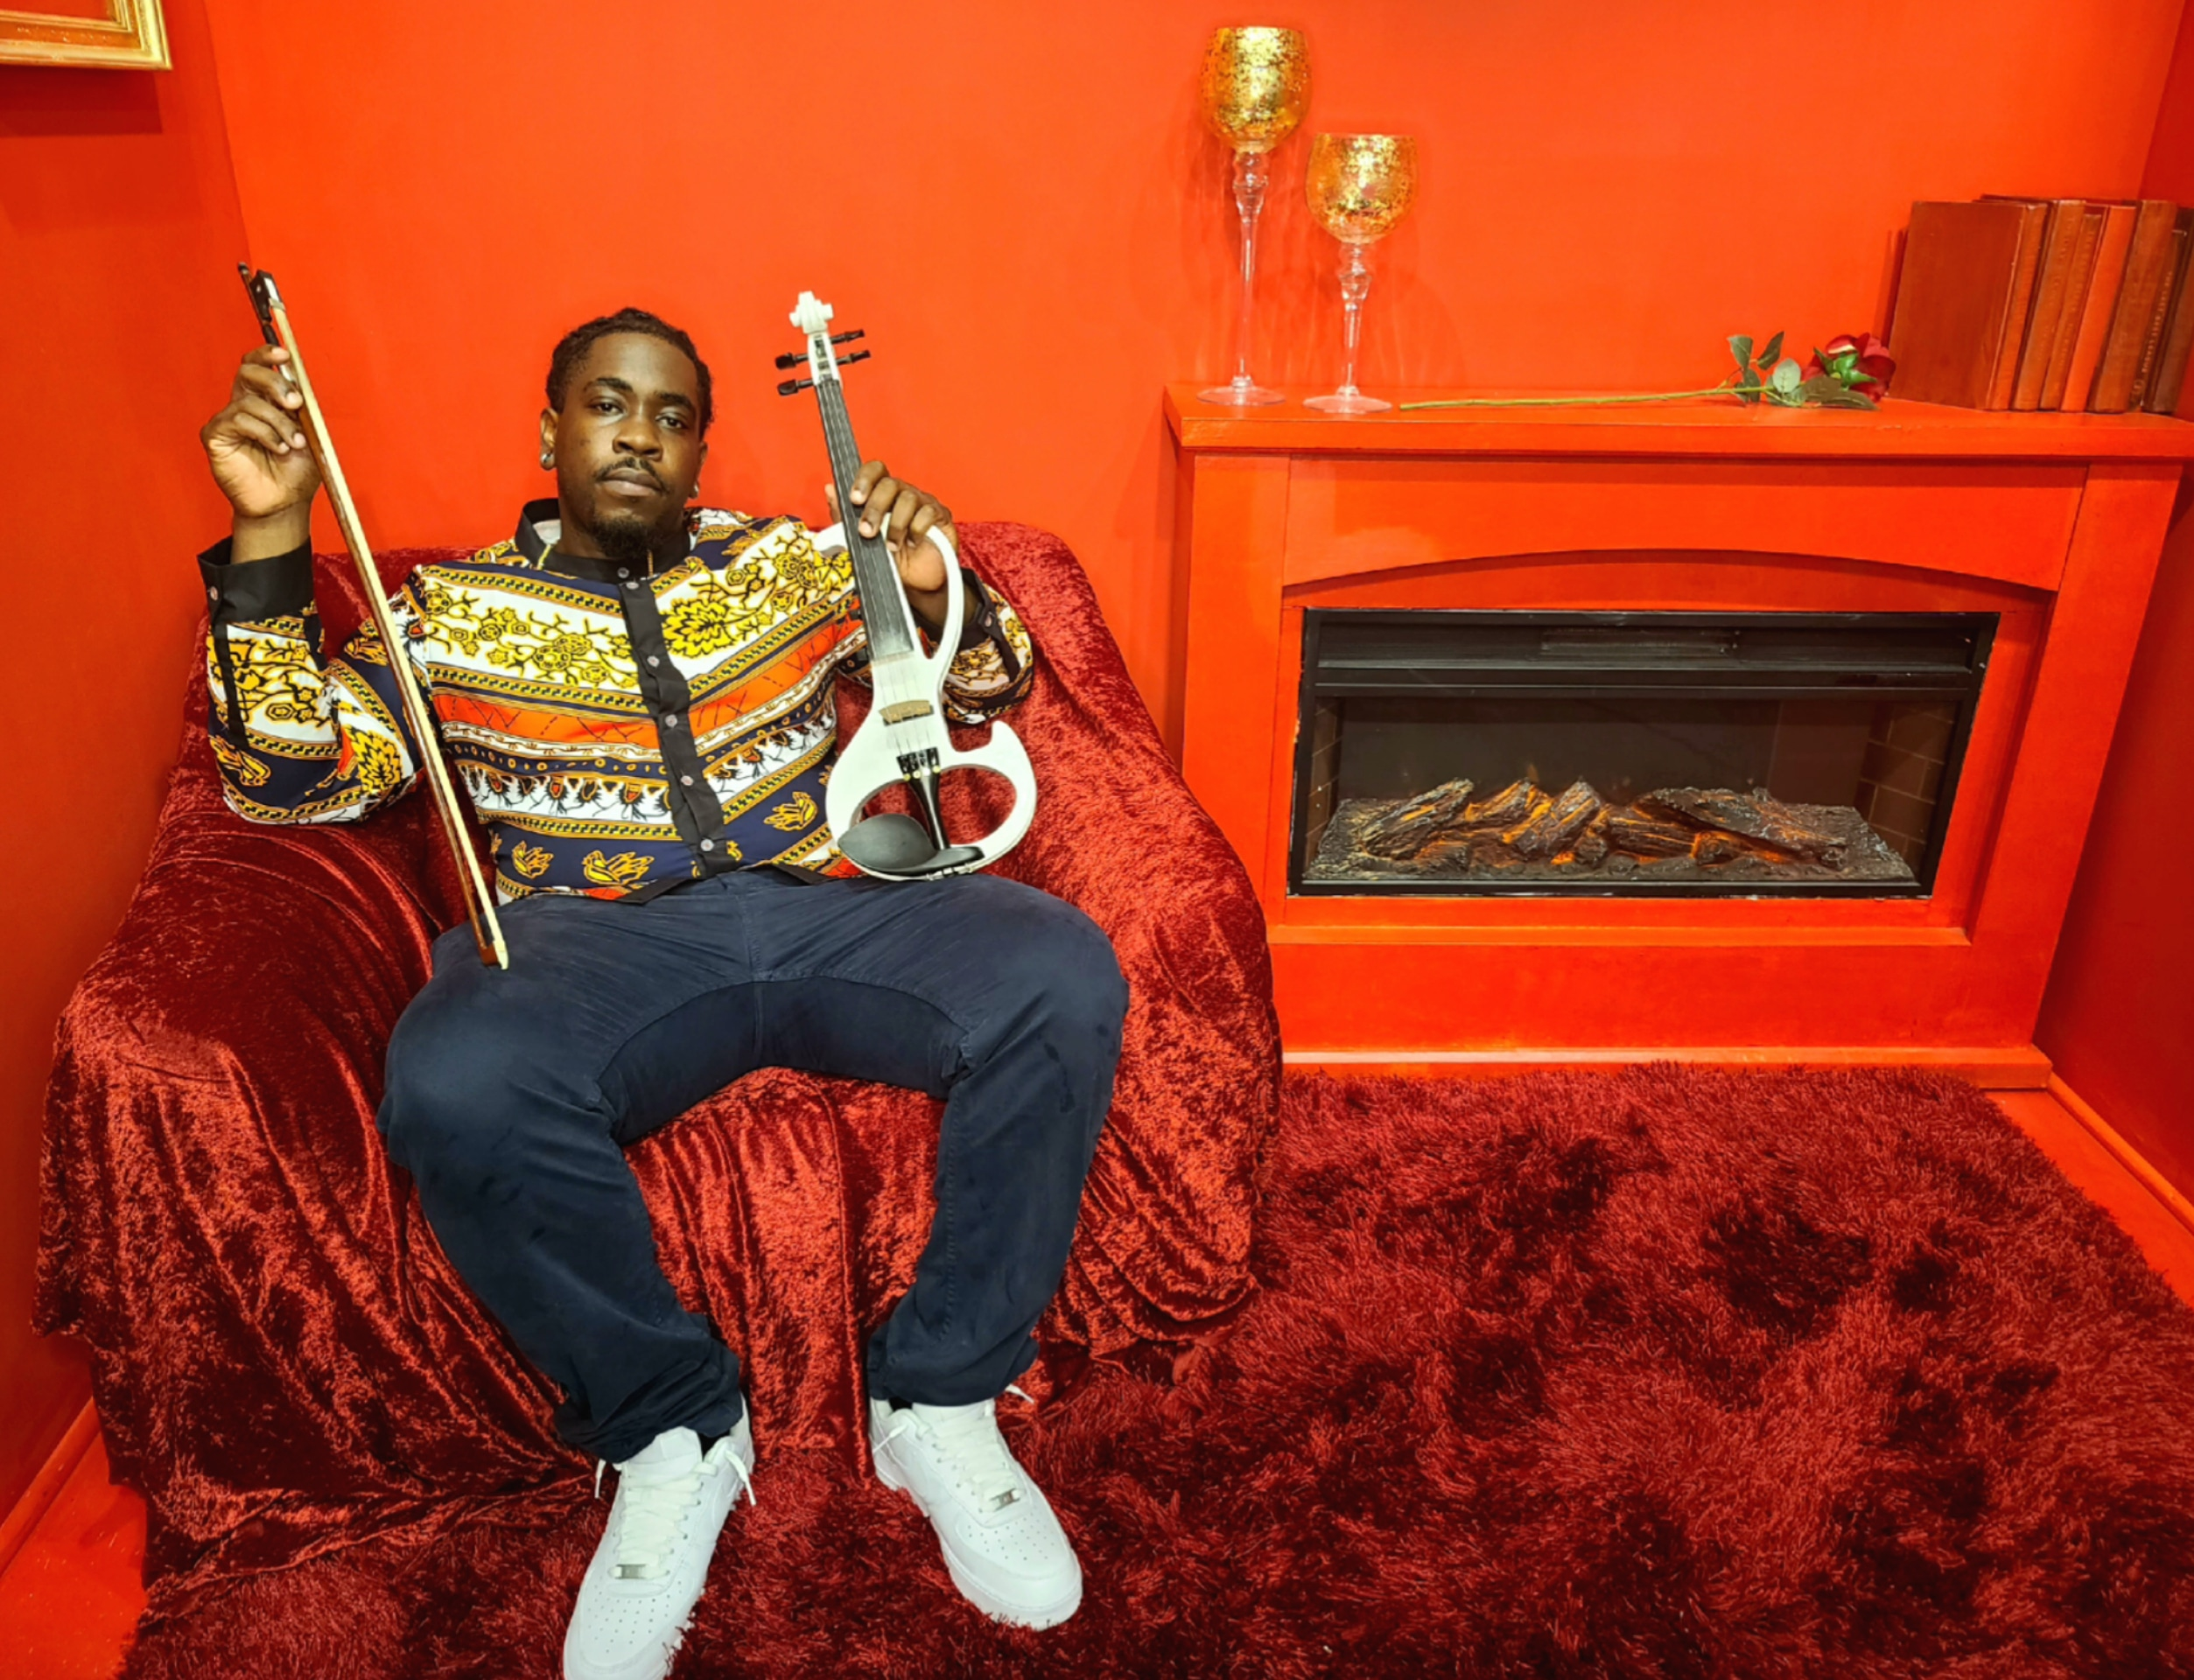 D.C. violinist Marvillous Beats fuses hip-hop and classical music